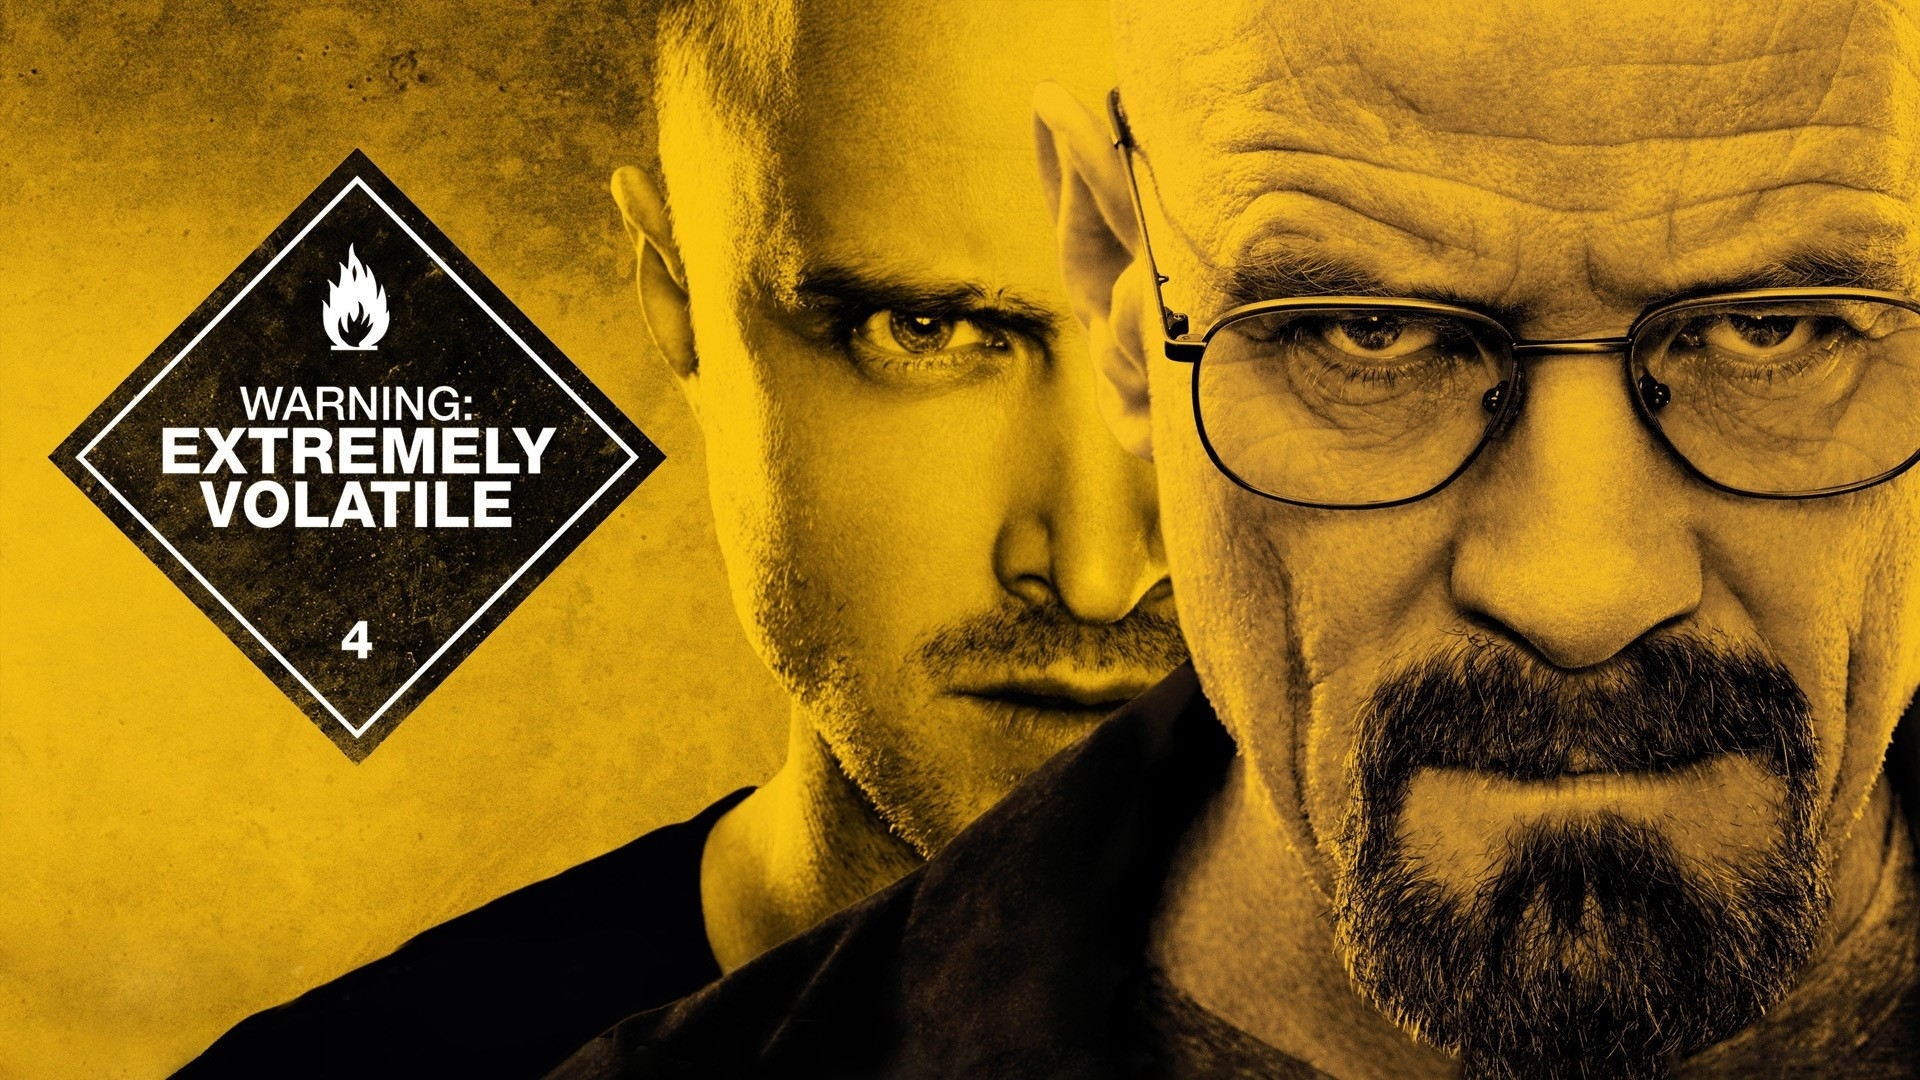 1920x1080 Preview wallpaper breaking bad, actors, face, walter white, jesse pinkman